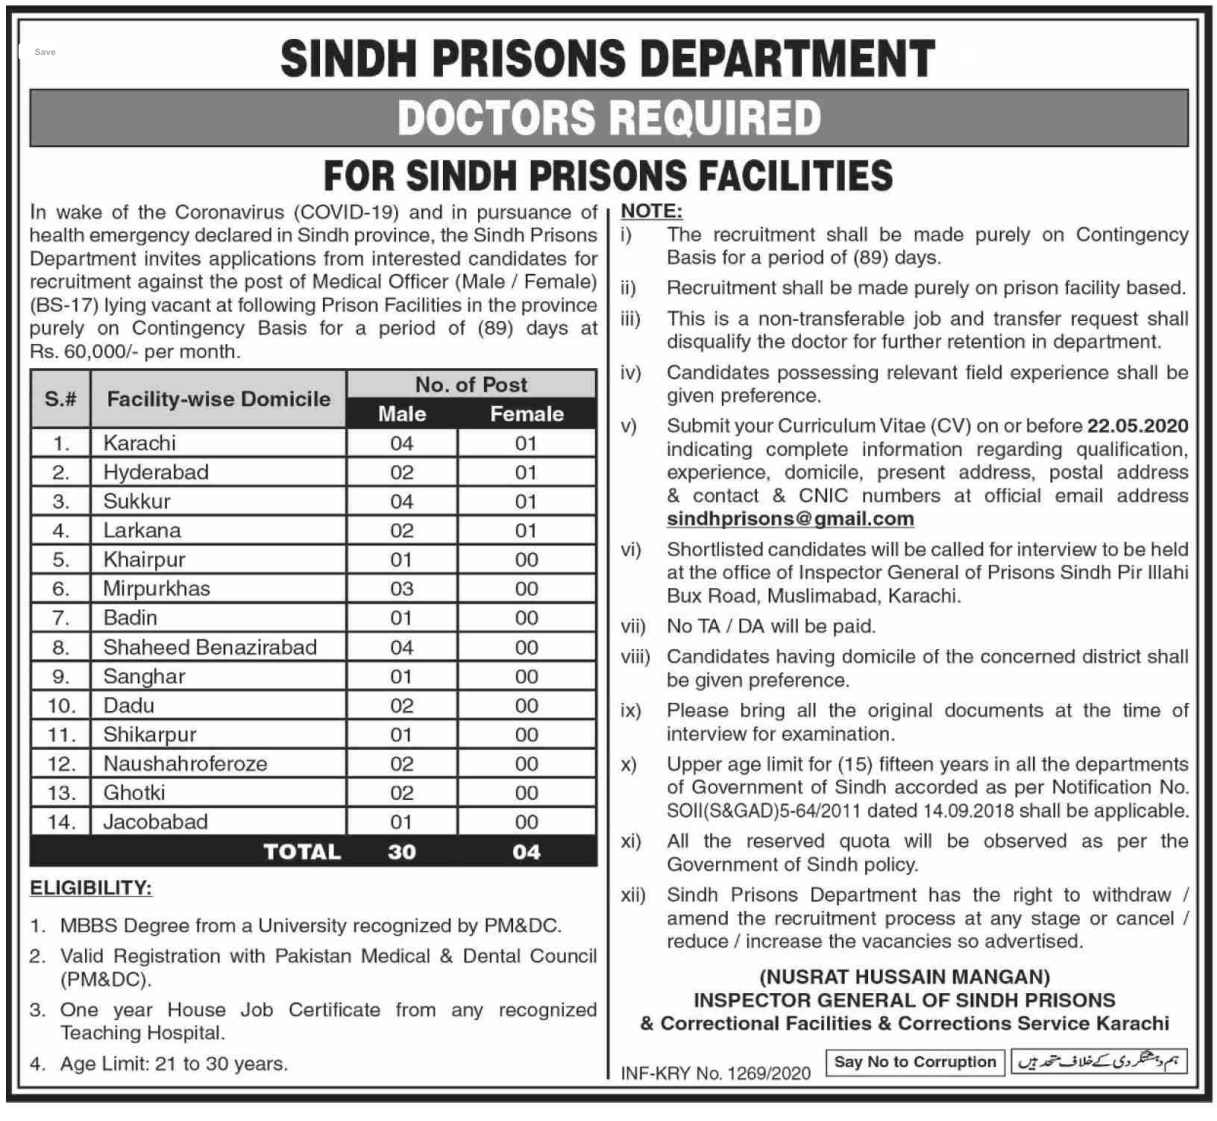 34 Seats in Sindh Prisons Department Jobs 2020 | Vacant Positions